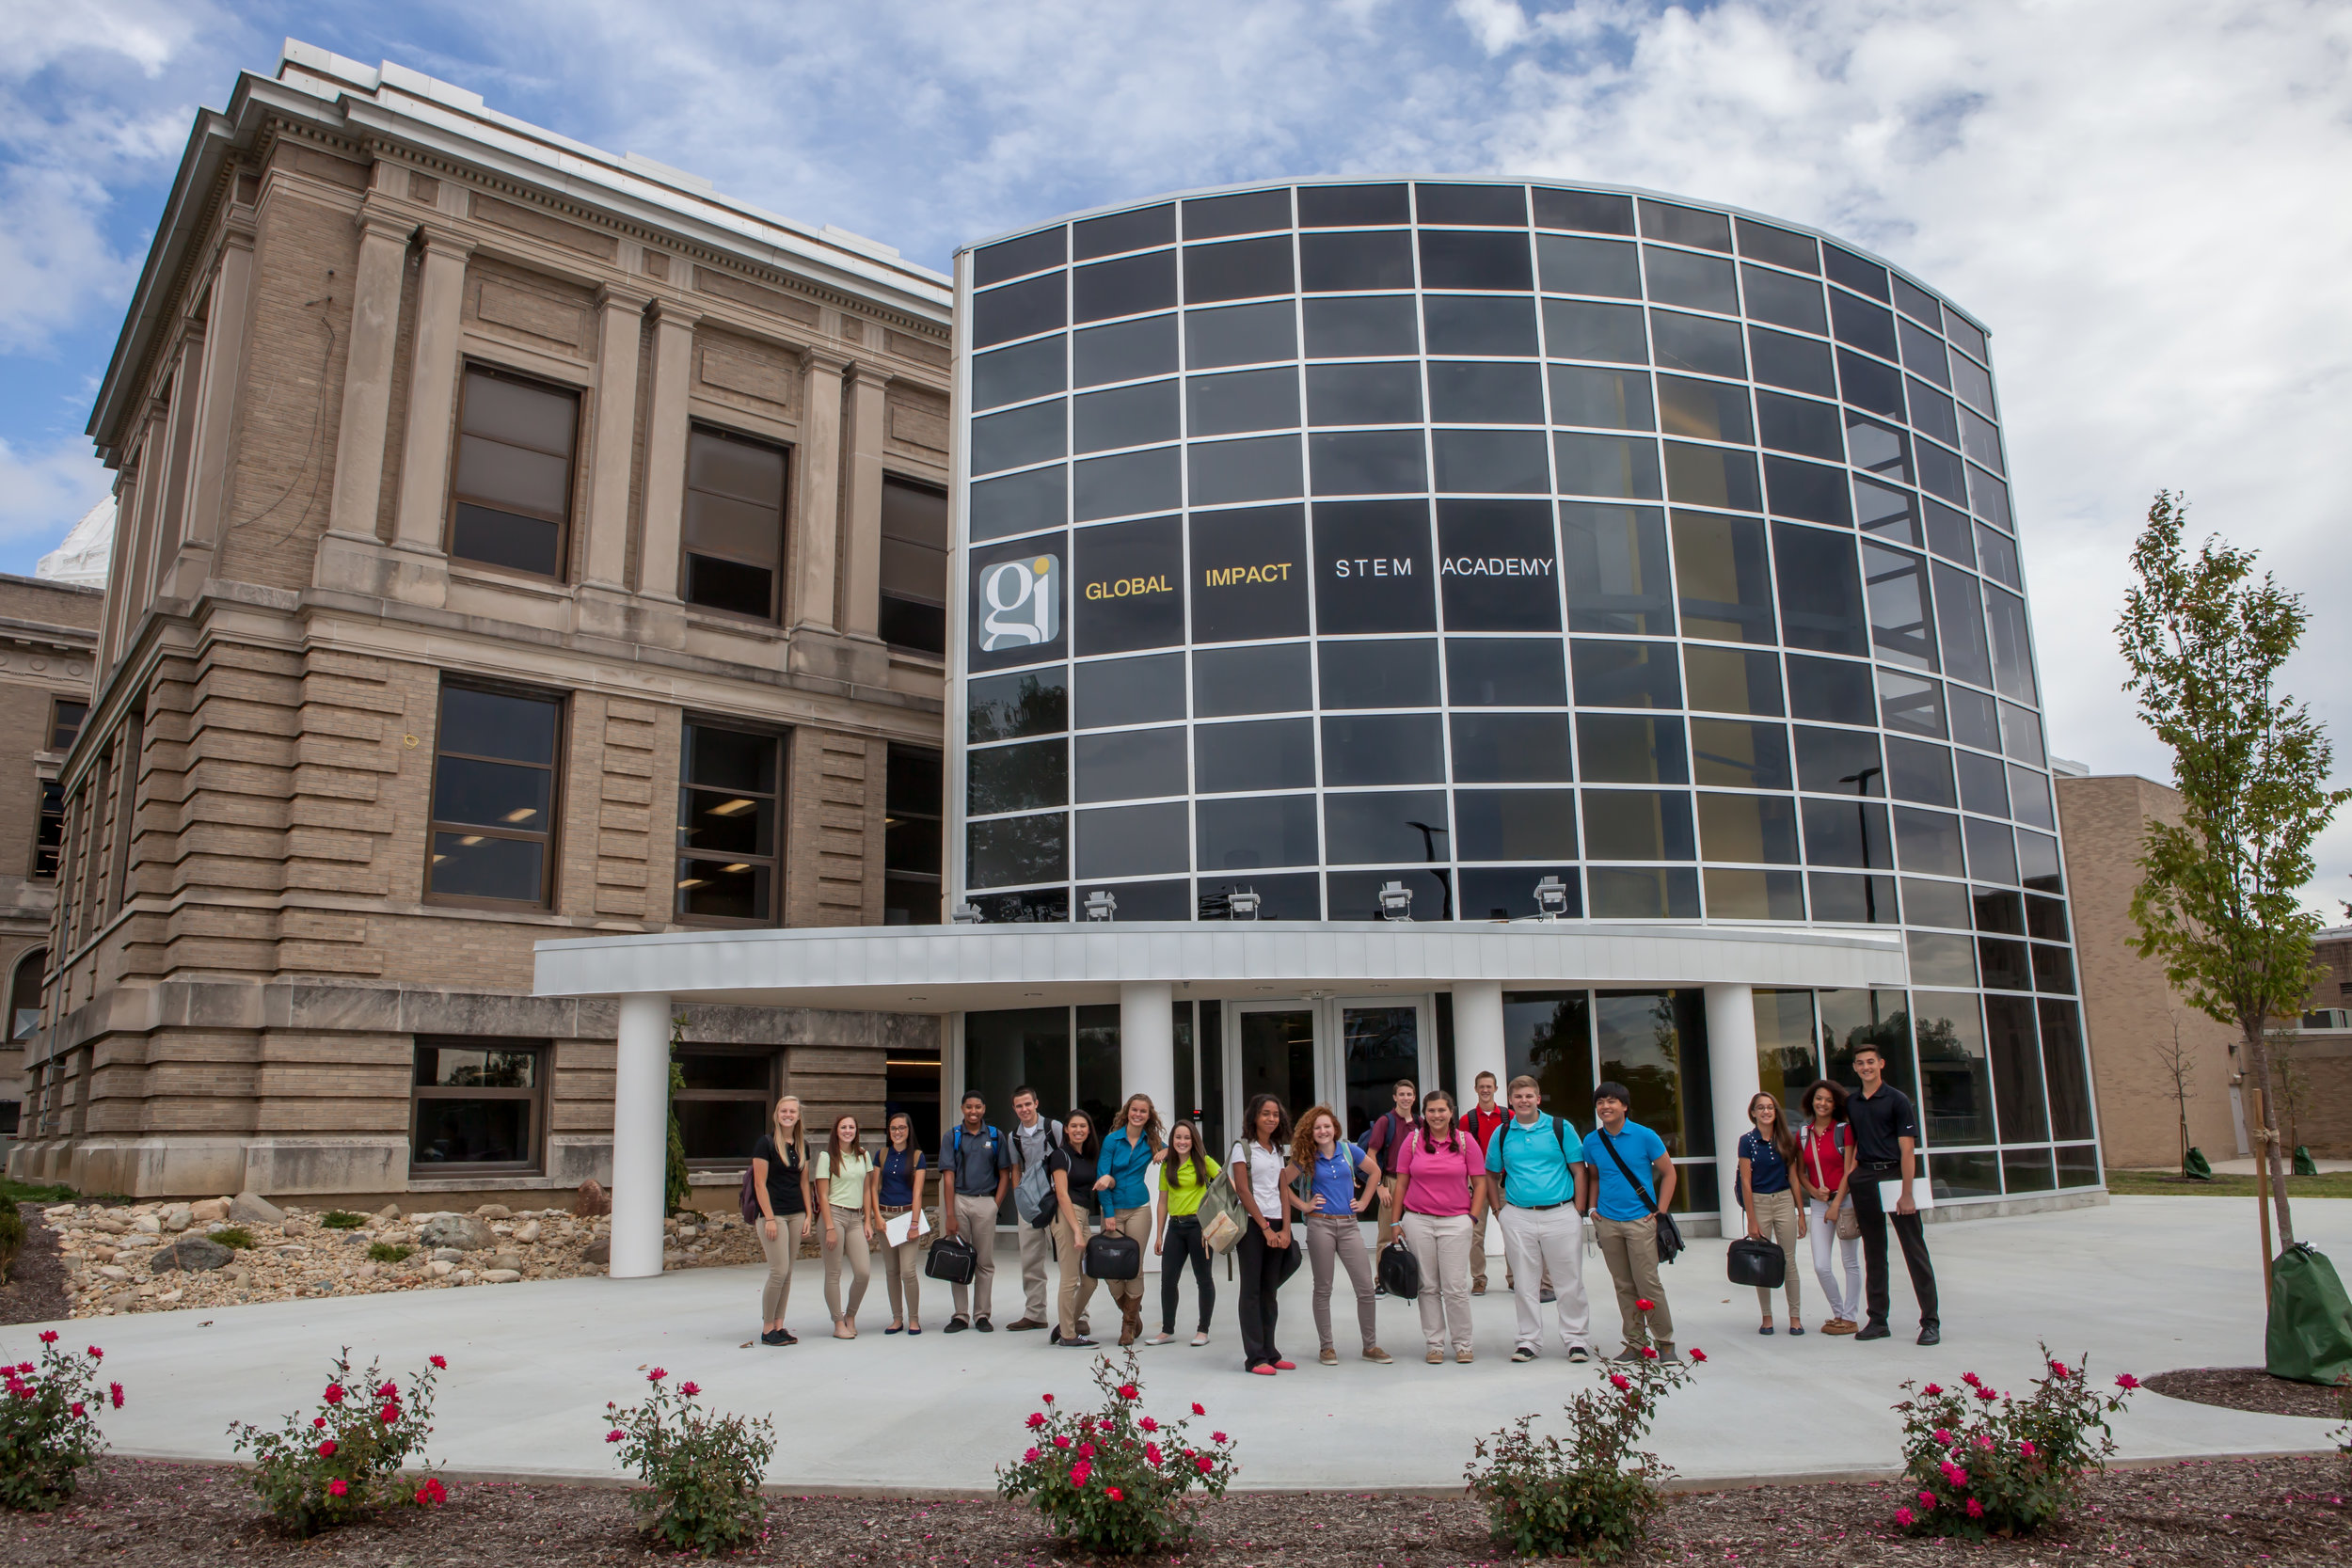 Pictured: Global Impact STEM Academy front entrance.